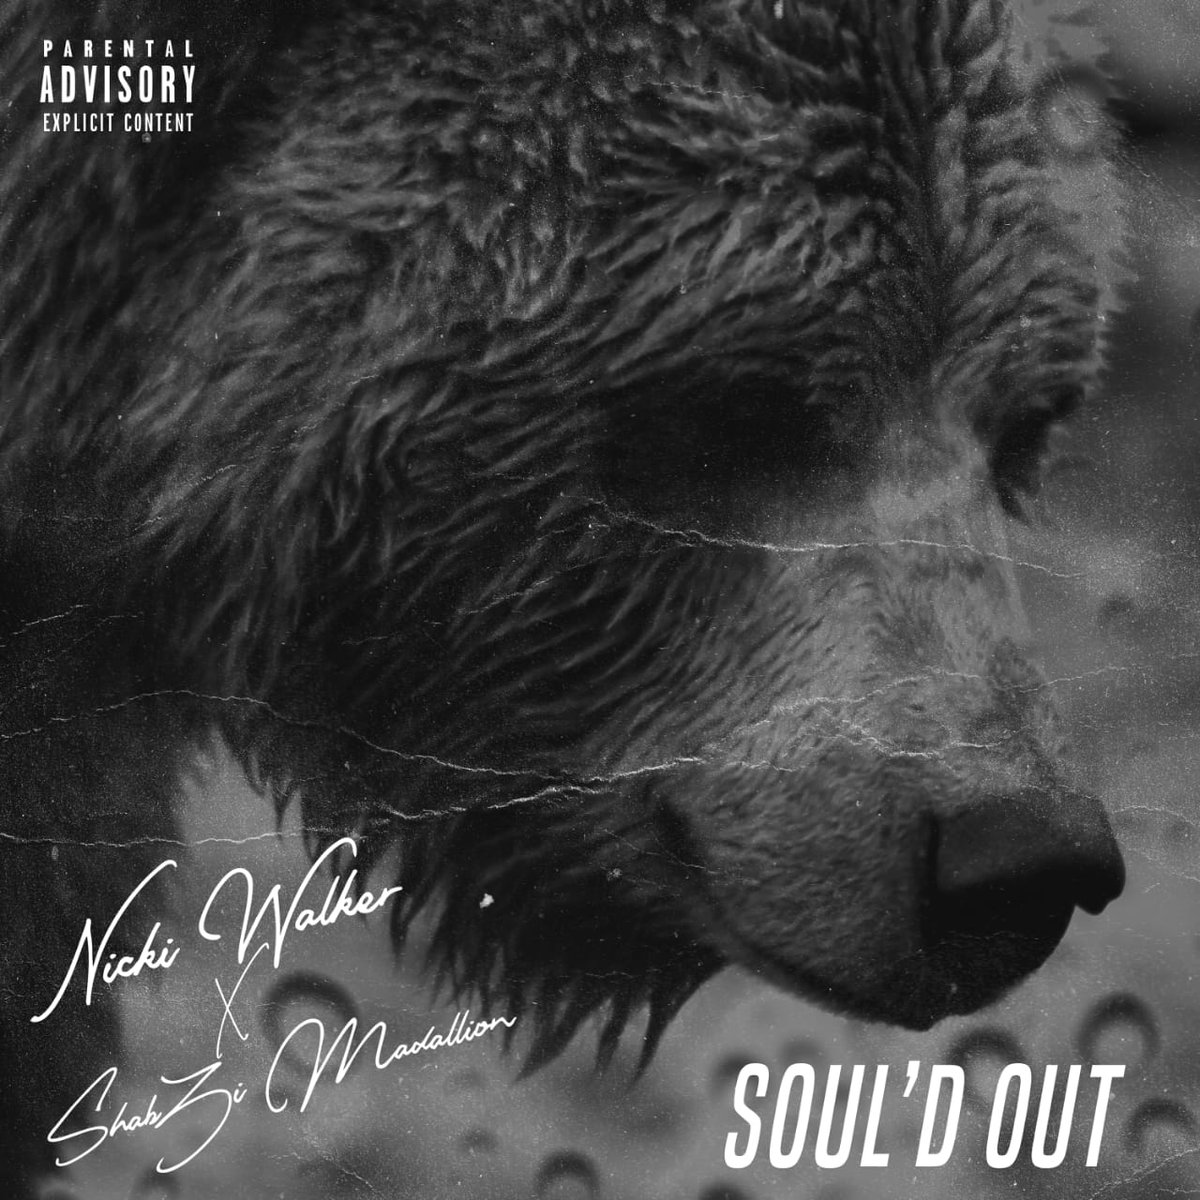 shabzi madallion Listen To The 'SOUL'D OUT' EP By Nicki Walker & ShabZi Madallion Dhyr0MPWsAAFxt7